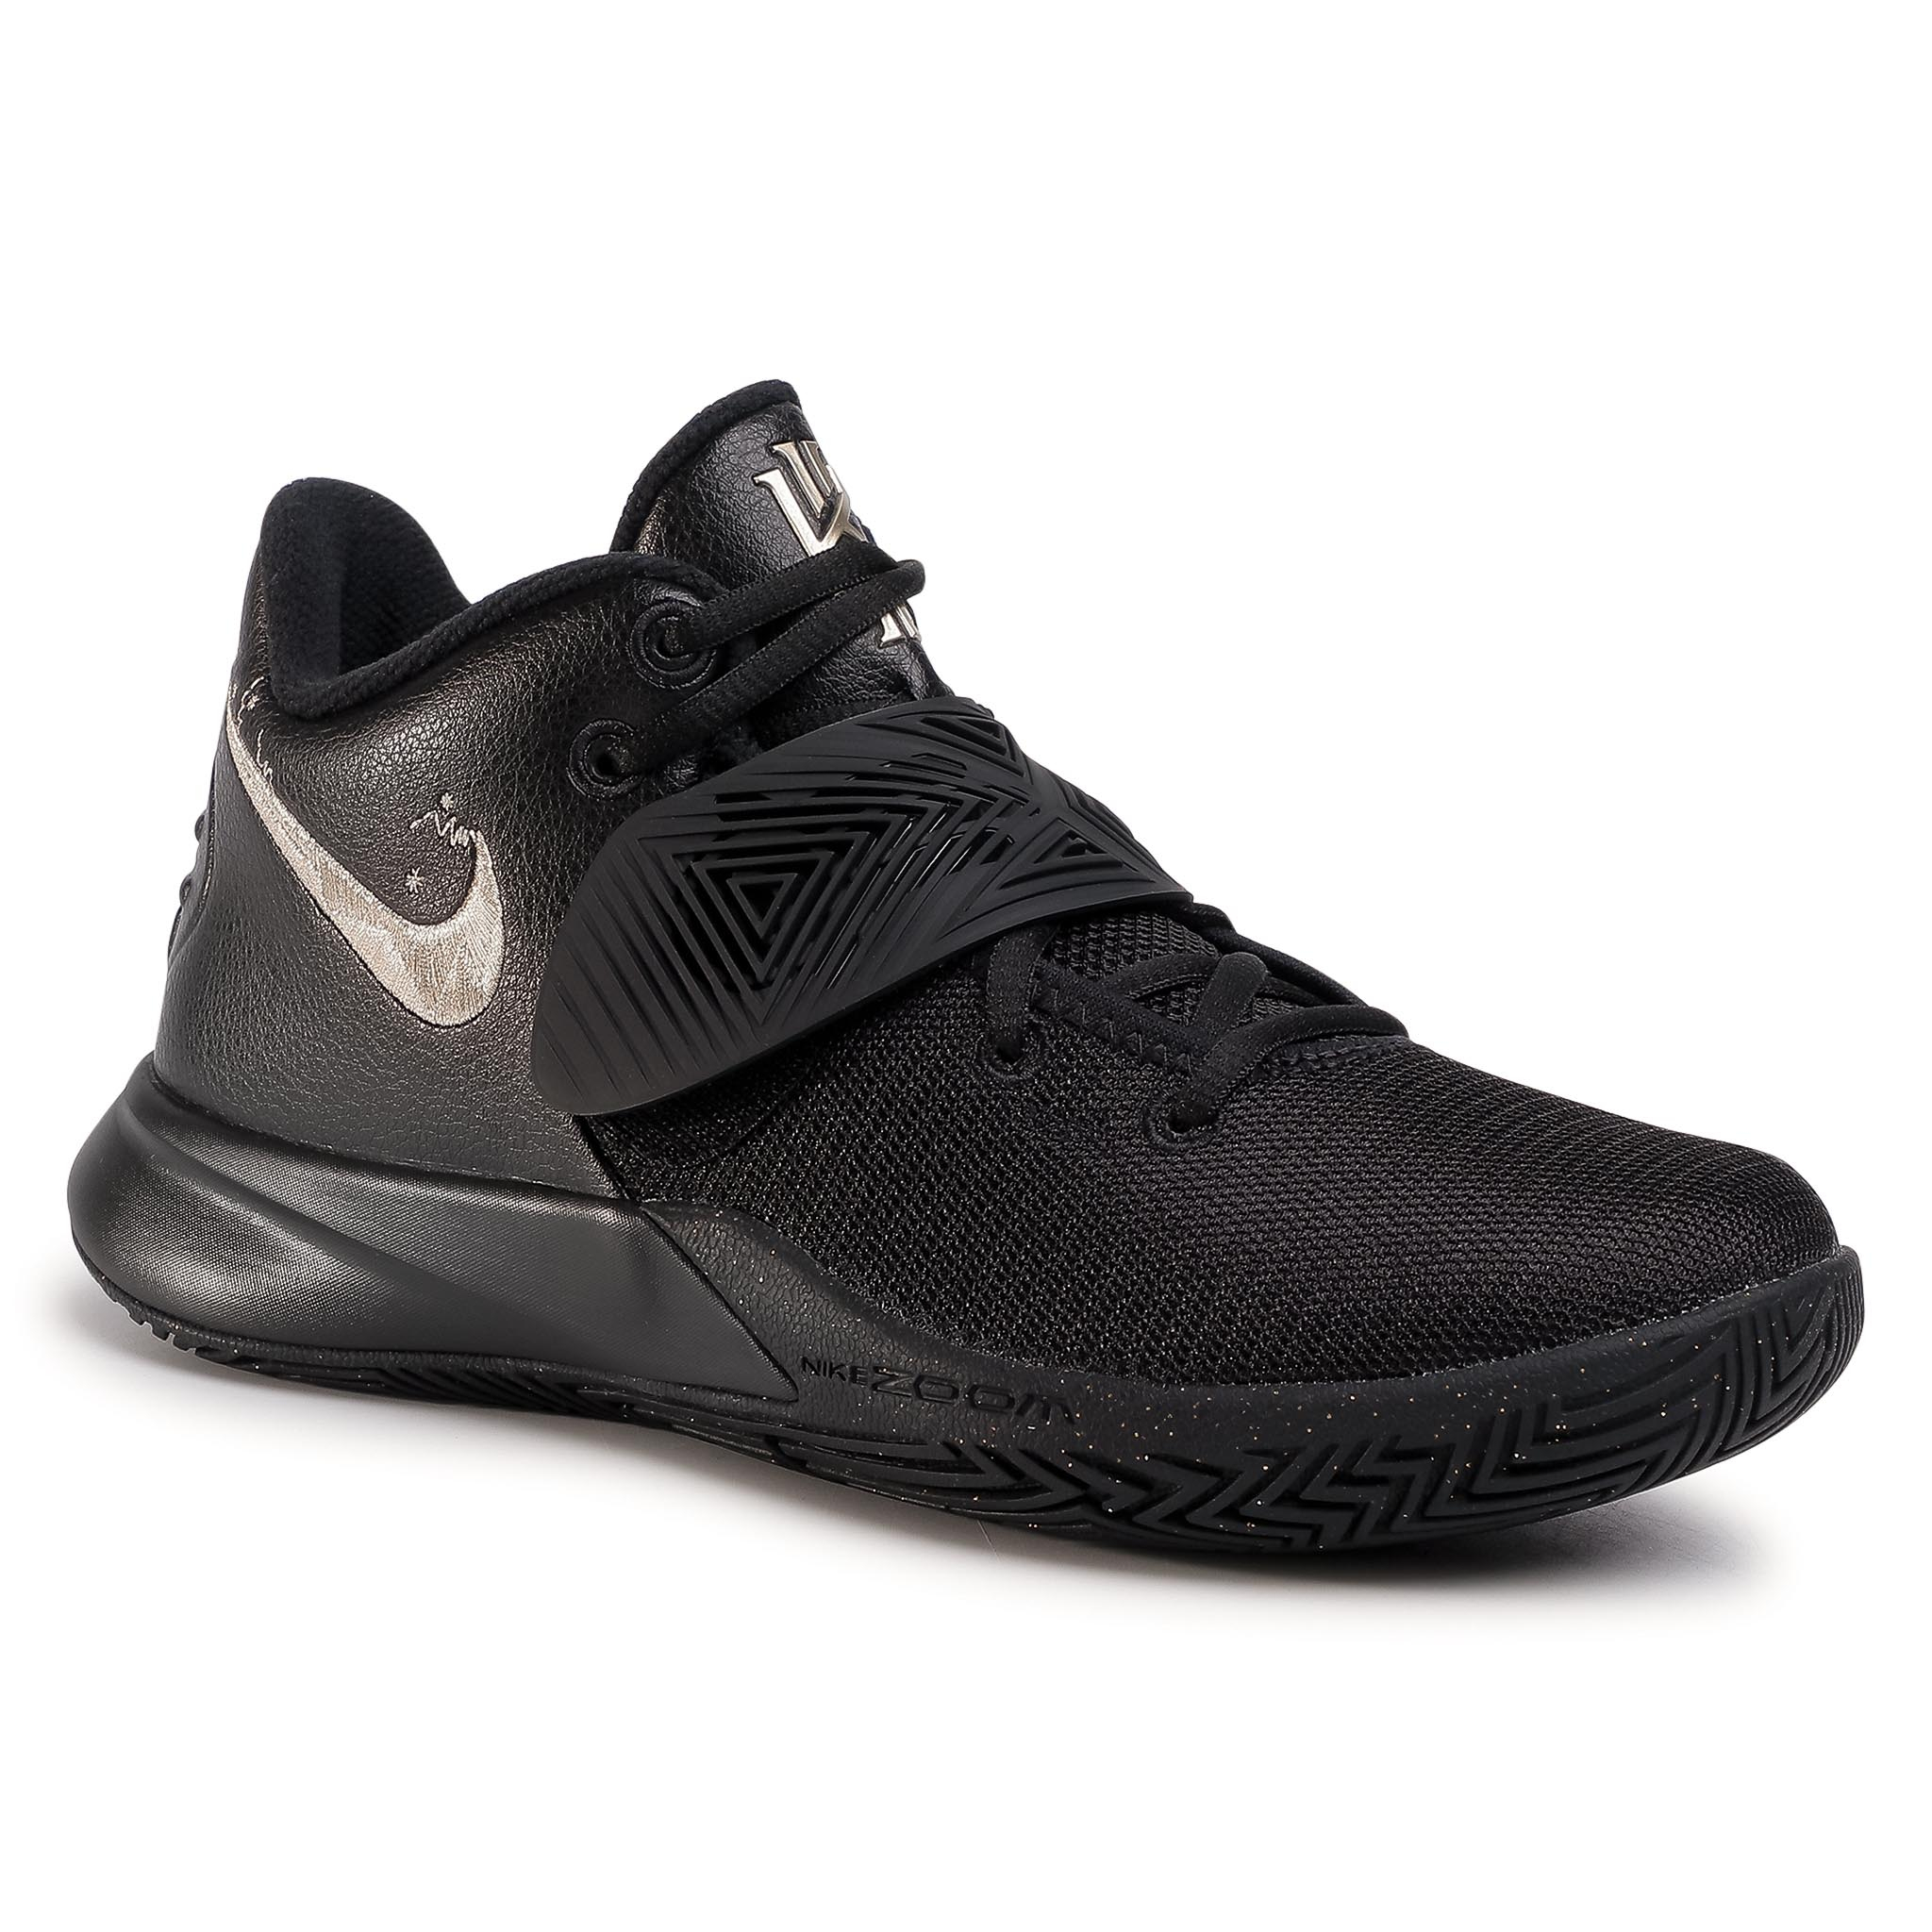 Pantofi Nike - Kyrie Flytrap Iii Bq3060-008 Black/Mtlc Gold Star imagine